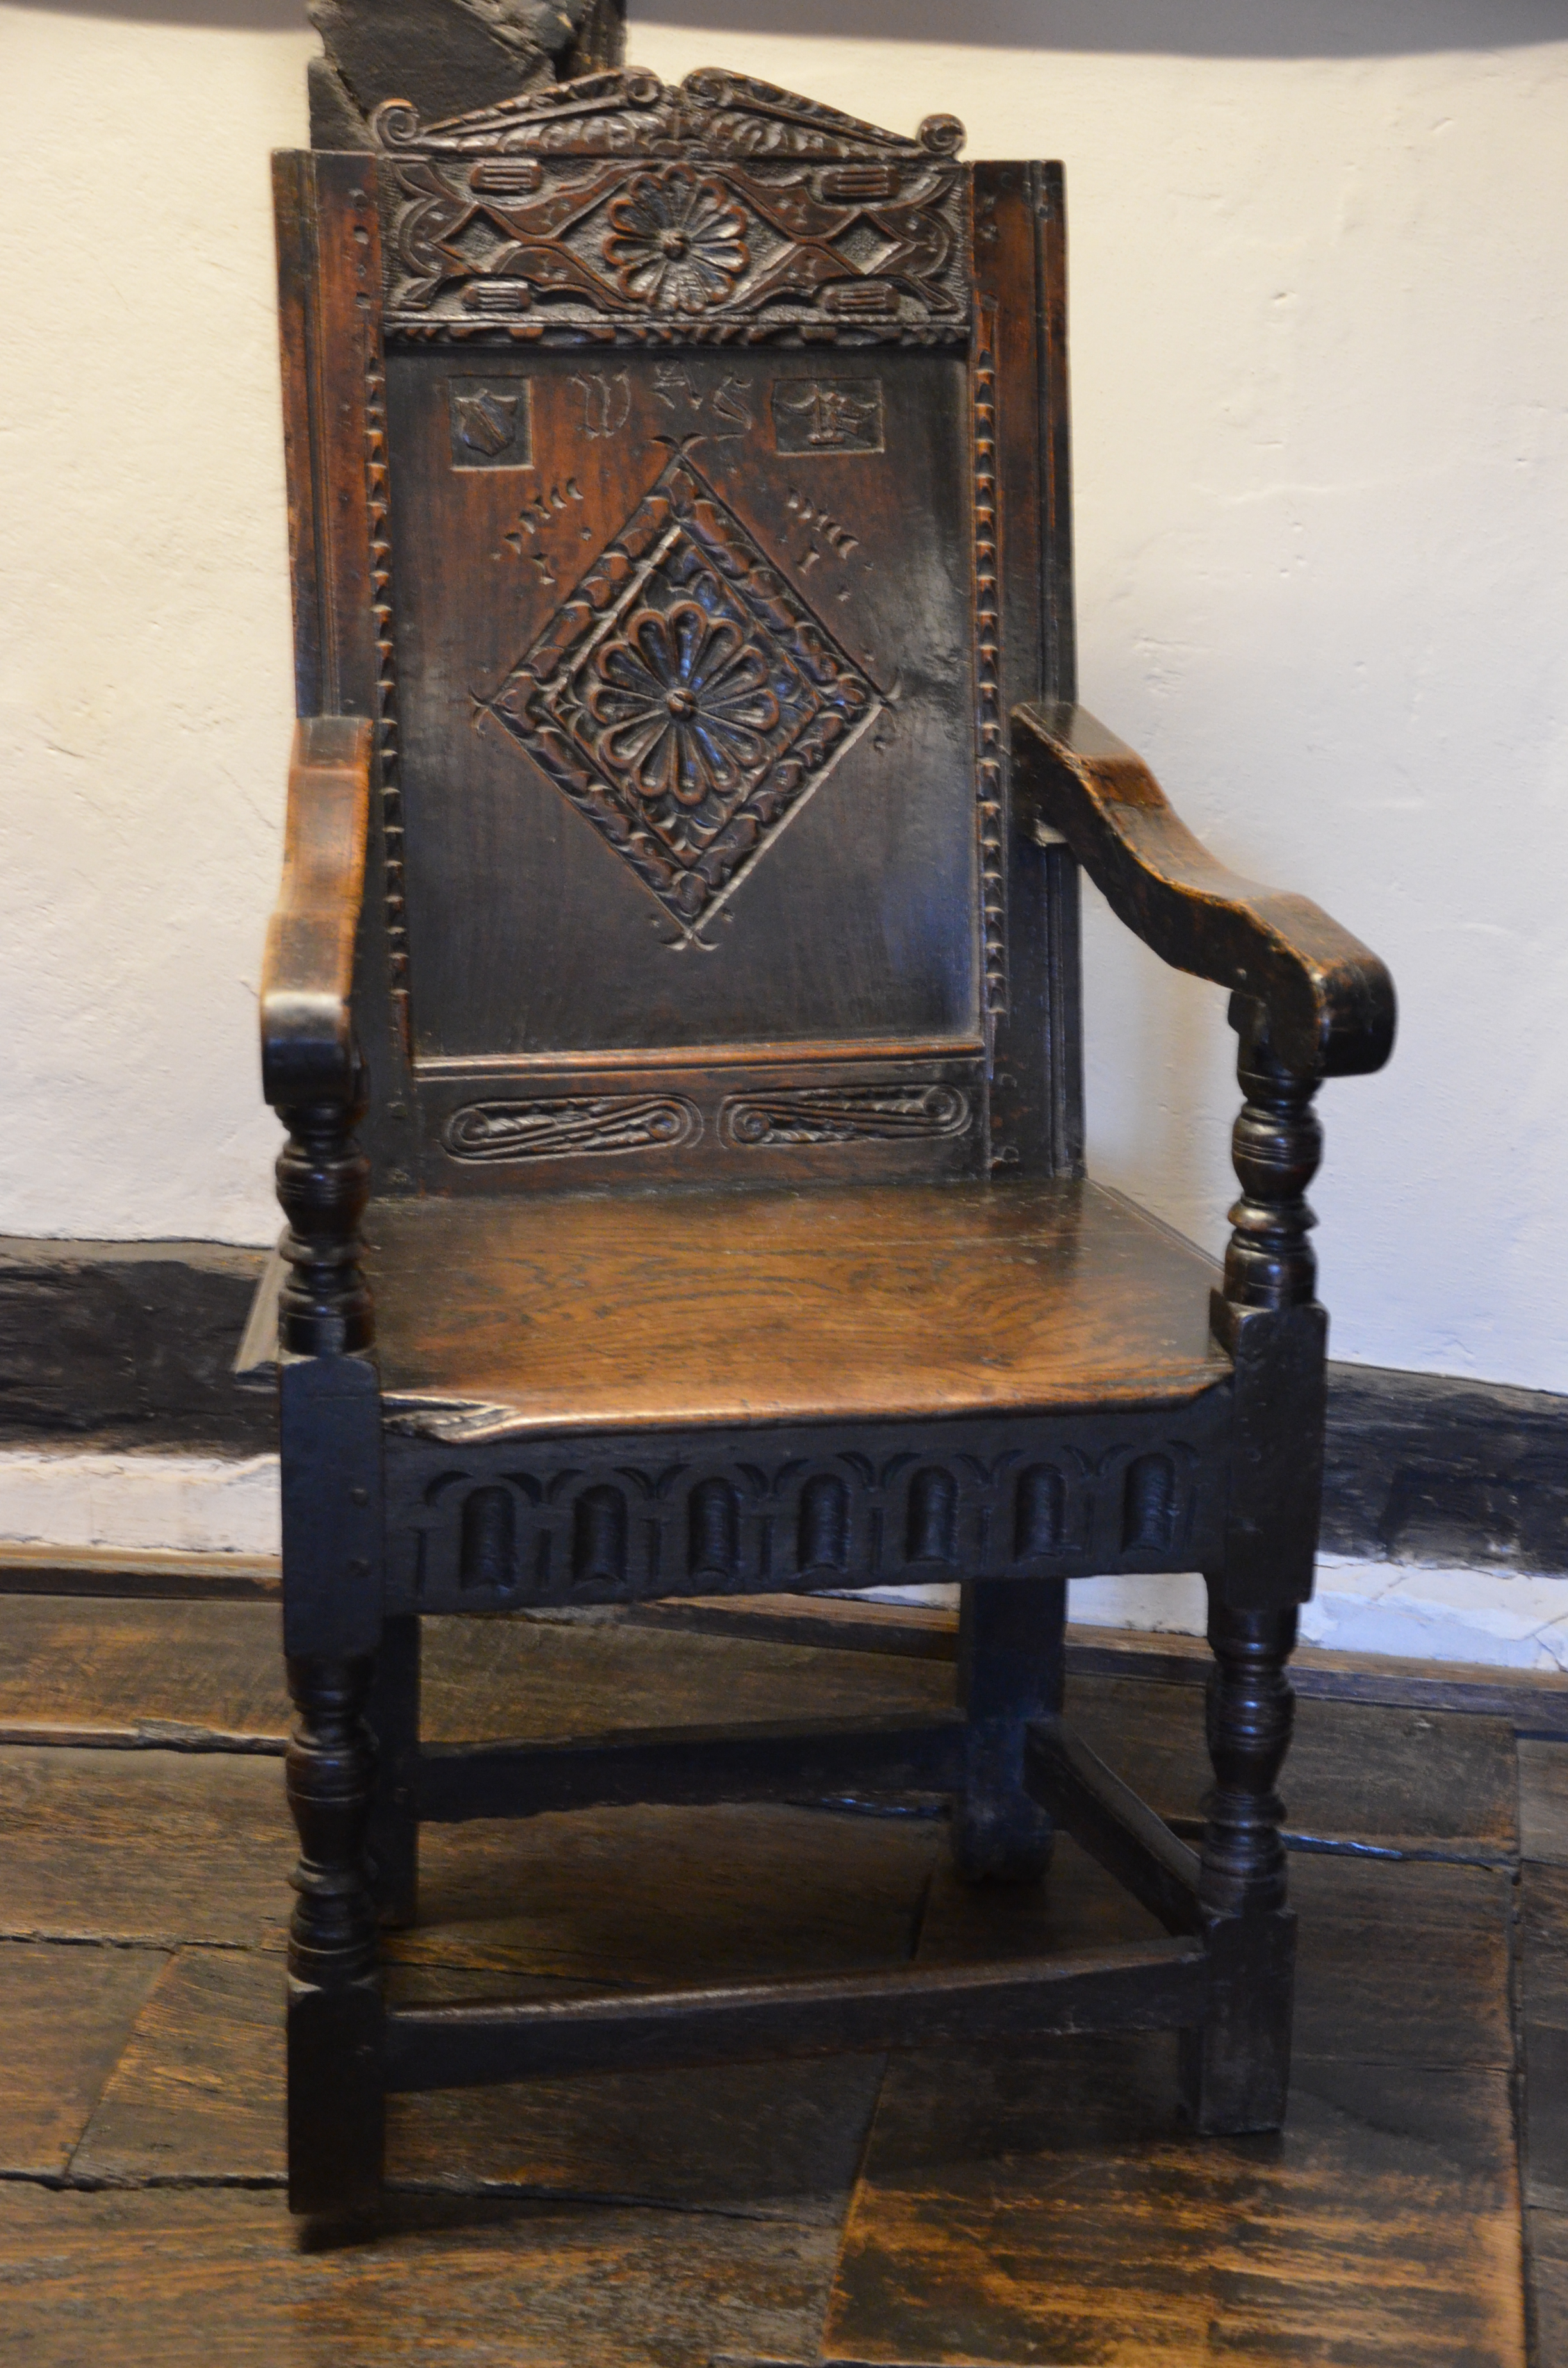 Shakespeareu0027s Courting Chair